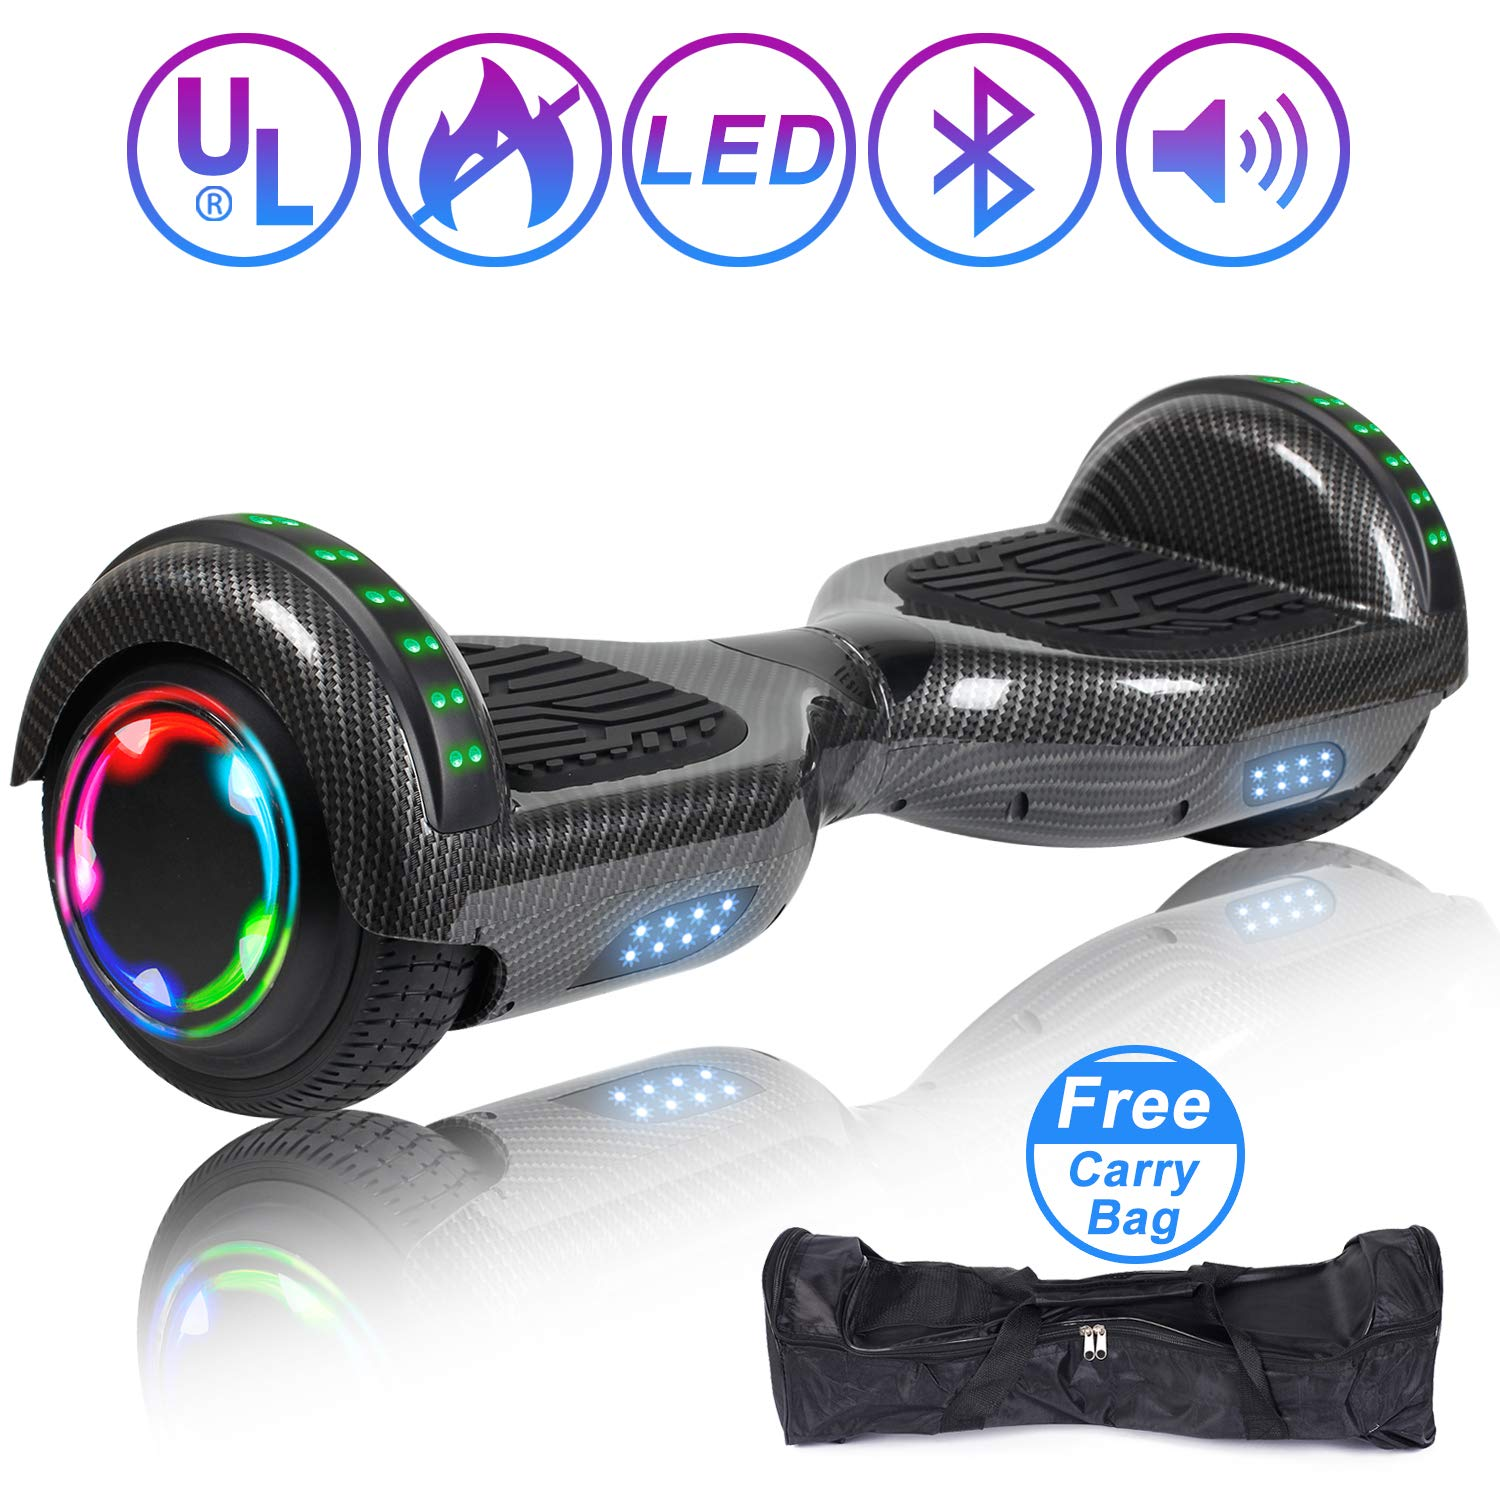 SISIGAD Hoverboard Self Balancing Scooter 6.5'' Two-Wheel Self Balancing Hoverboard with Bluetooth Speaker and LED Lights Electric Scooter for Adult Kids Gift UL 2272 Certified - Carbon Black